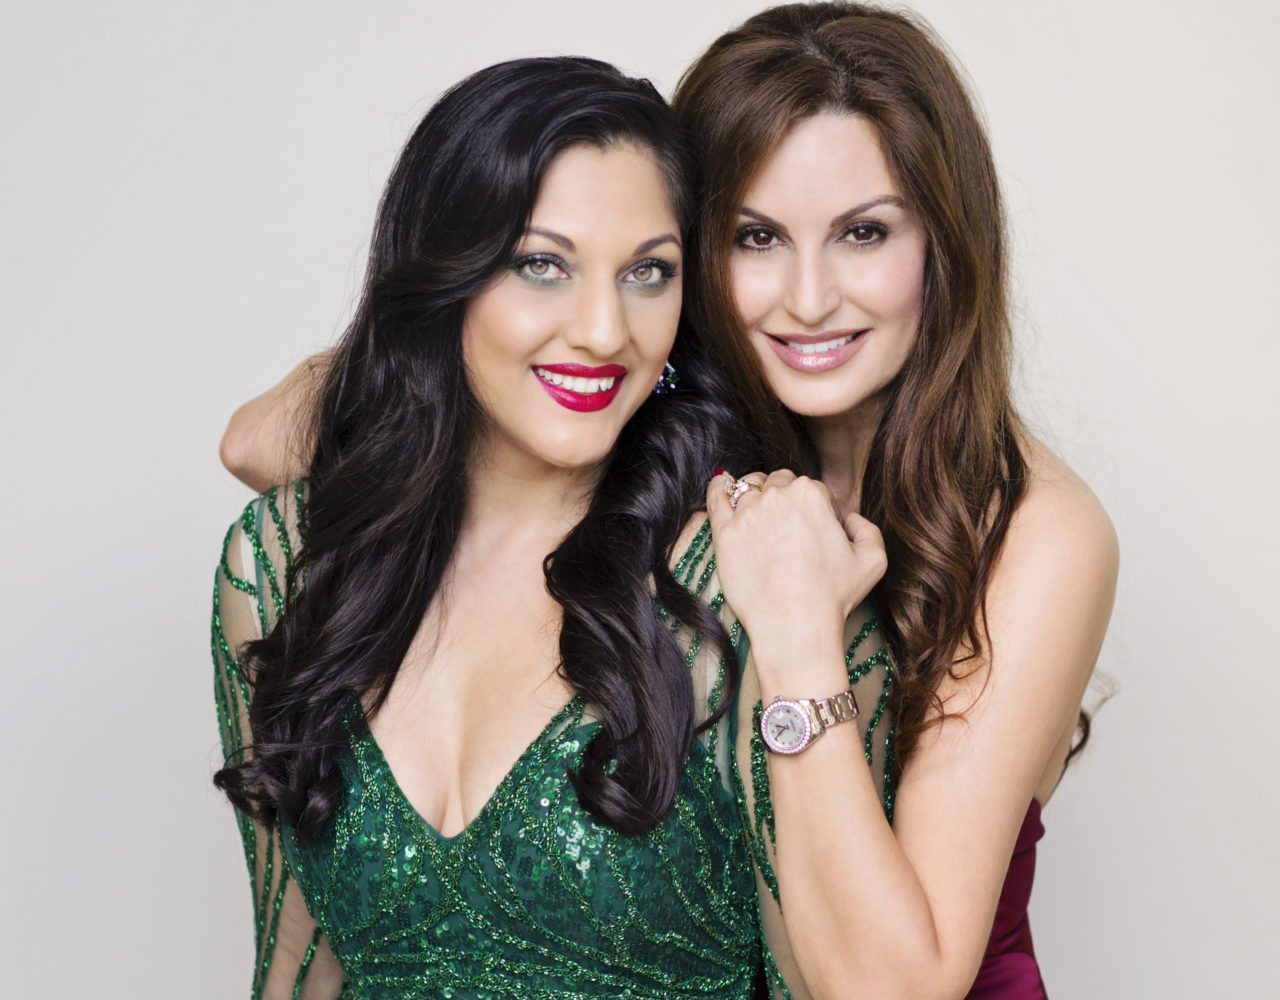 Stylishly Generous | Brigitte Kalai & Dr. Sippi Khurana Women of Substance